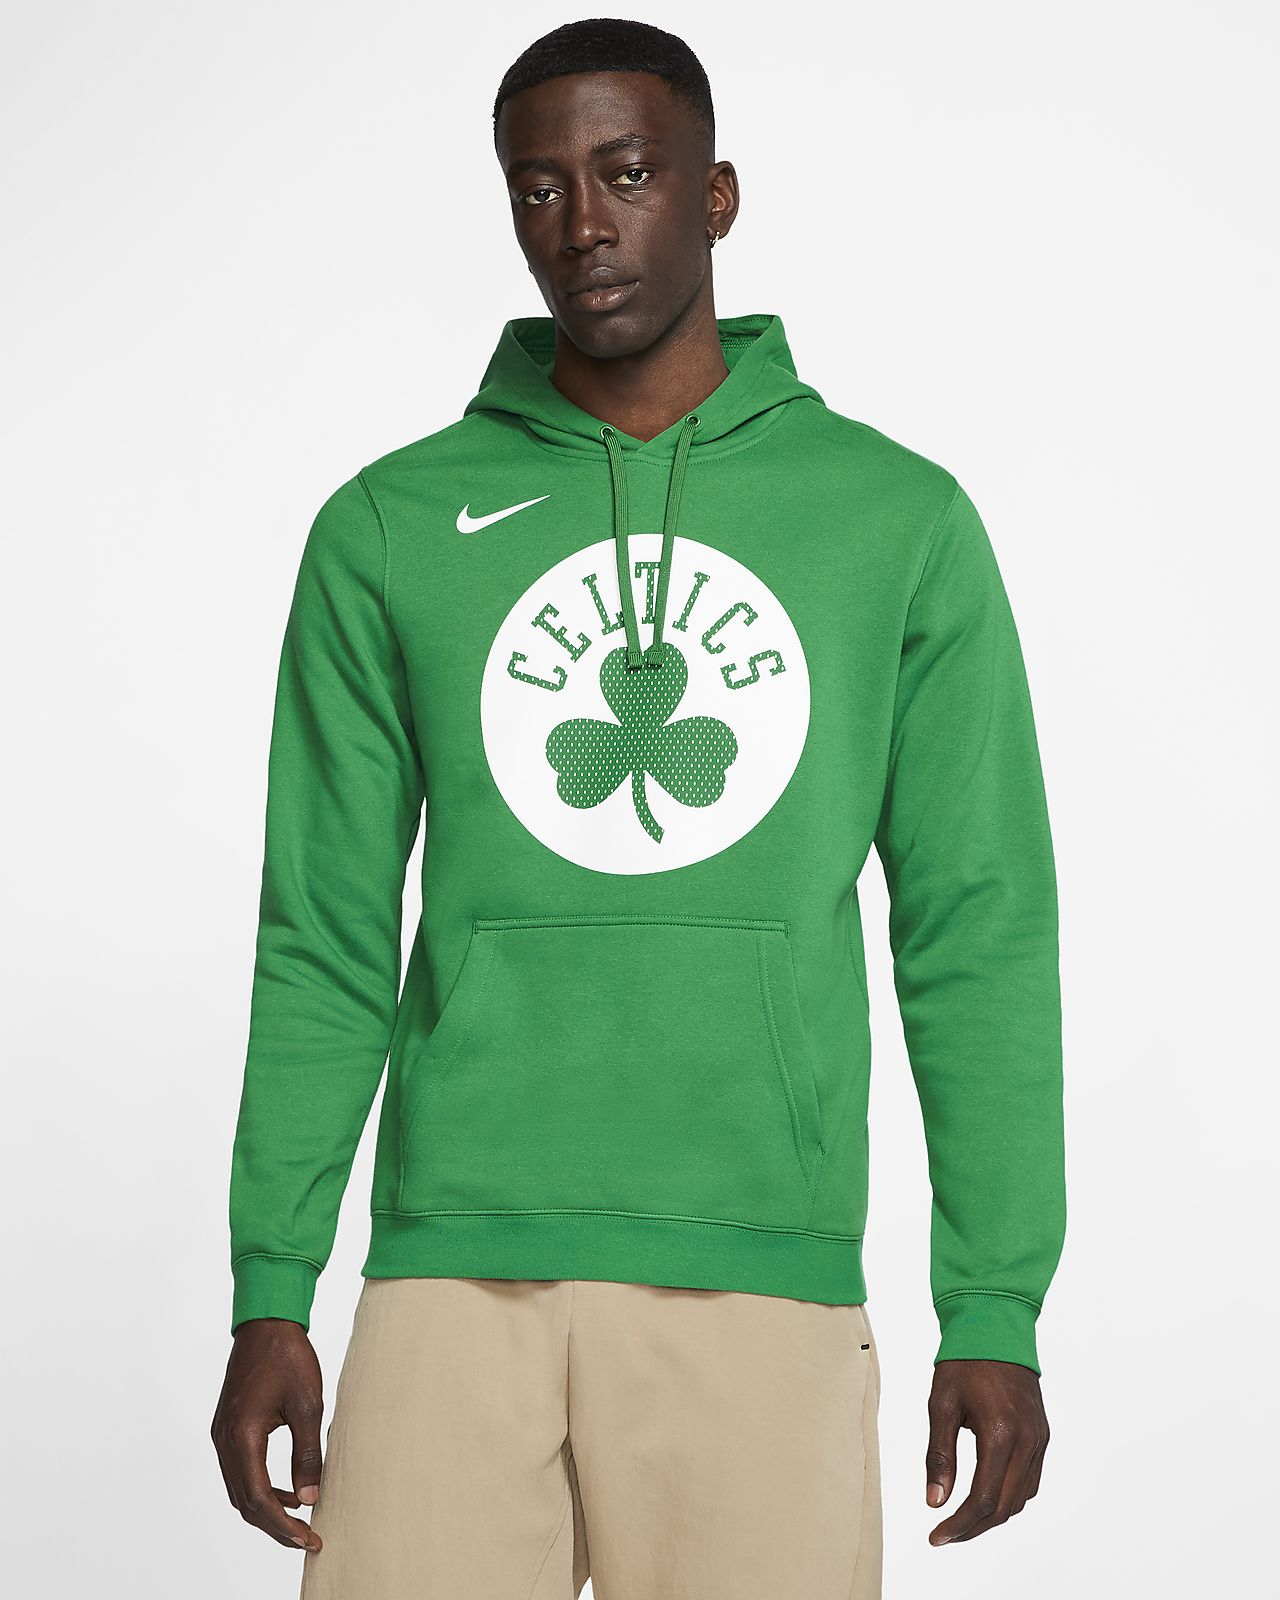 Boston Celtics Nike Men's NBA Hoodie